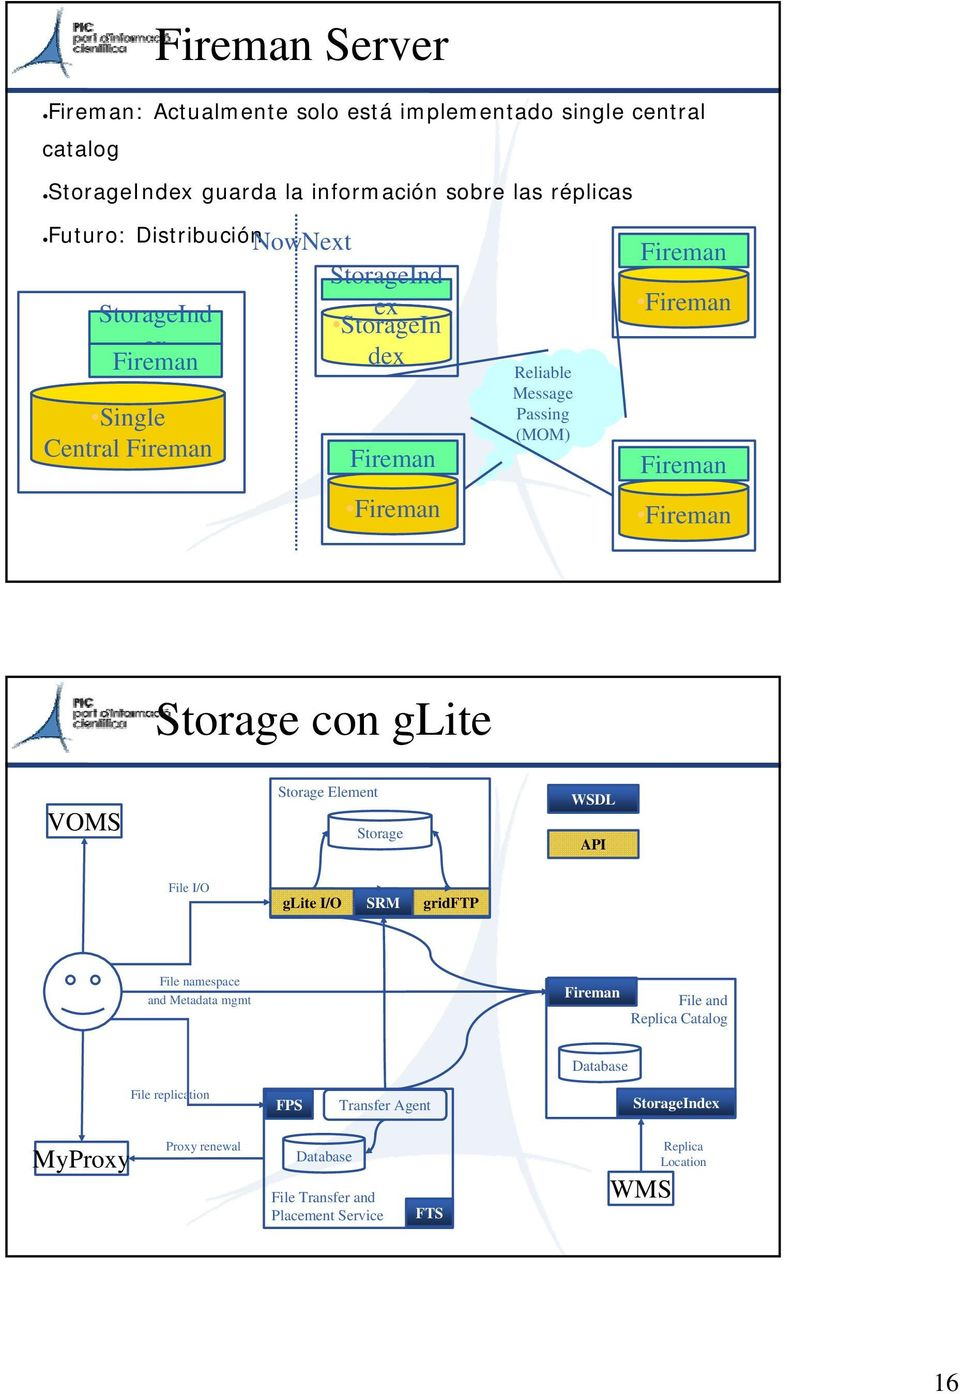 Fireman Fireman Storage con glite VOMS Storage Element Storage WSDL API File I/O glite I/O SRM gridftp File namespace and Metadata mgmt Fireman File and